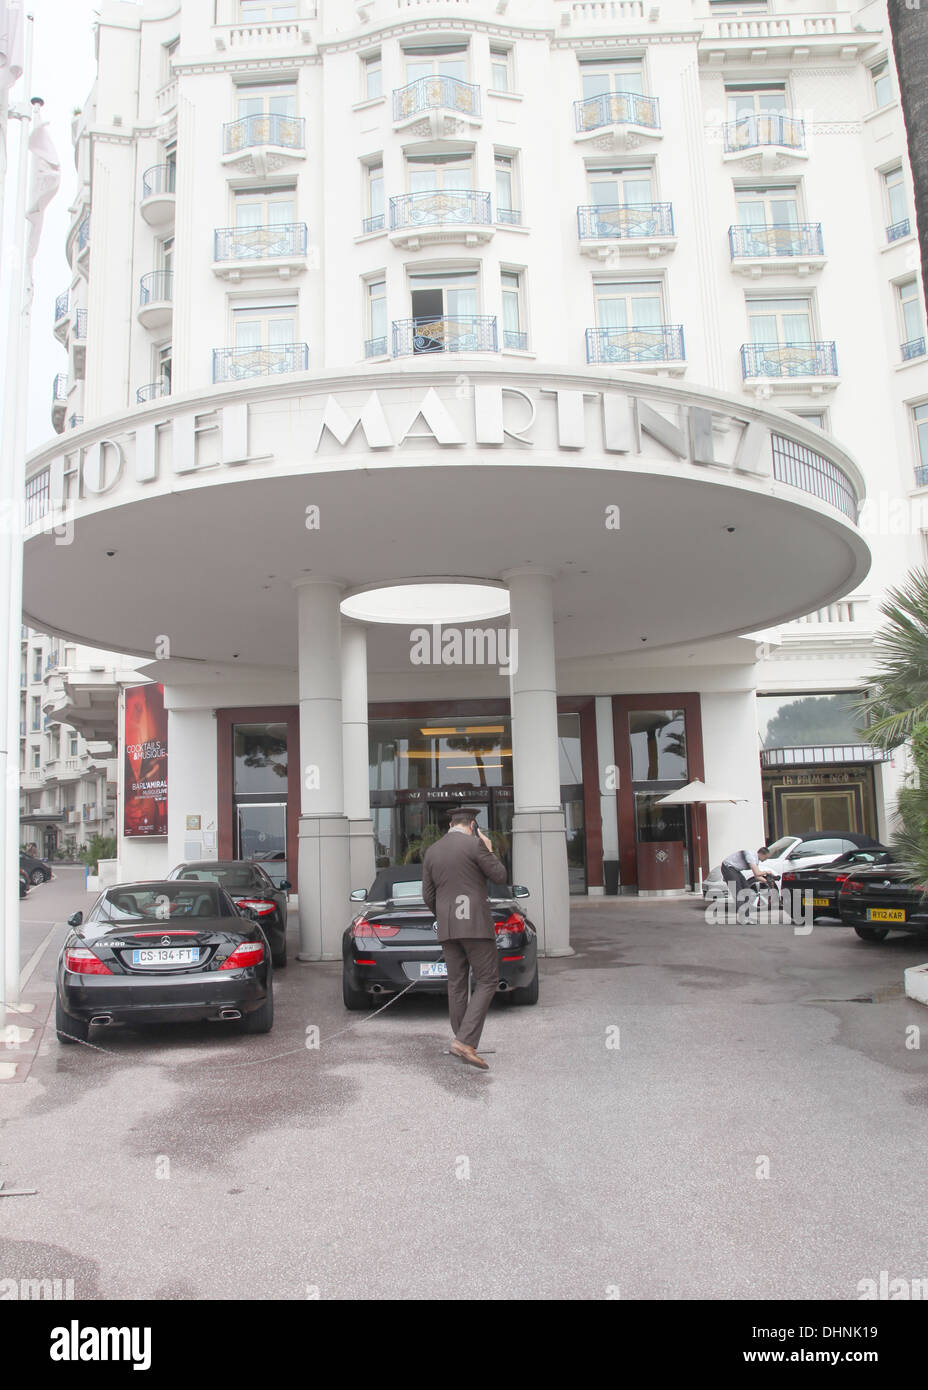 Hotel Martinez cannes - Stock Image